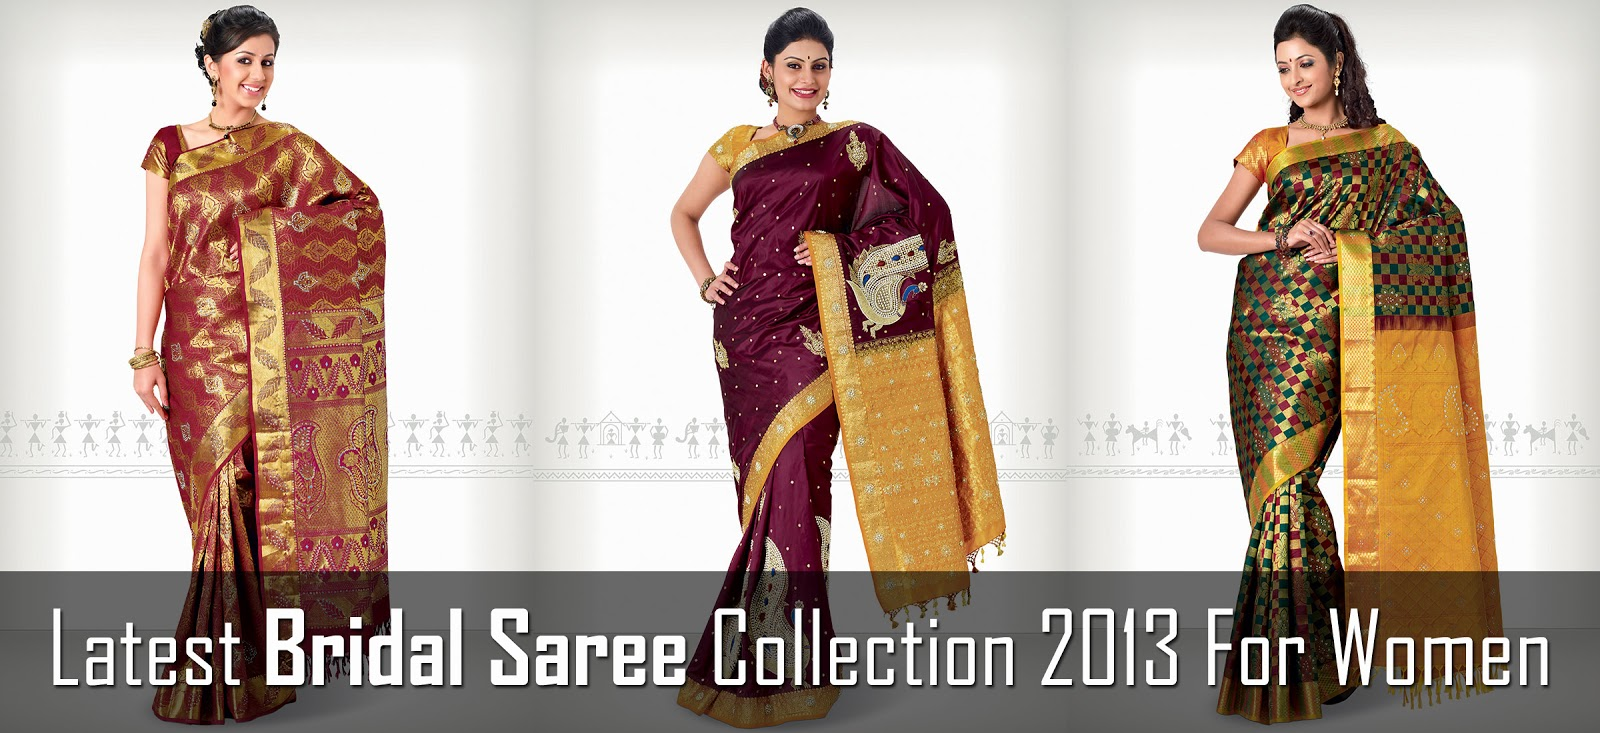 Latest Bridal Saree Collection 2013 For Women | Indian Designer ...